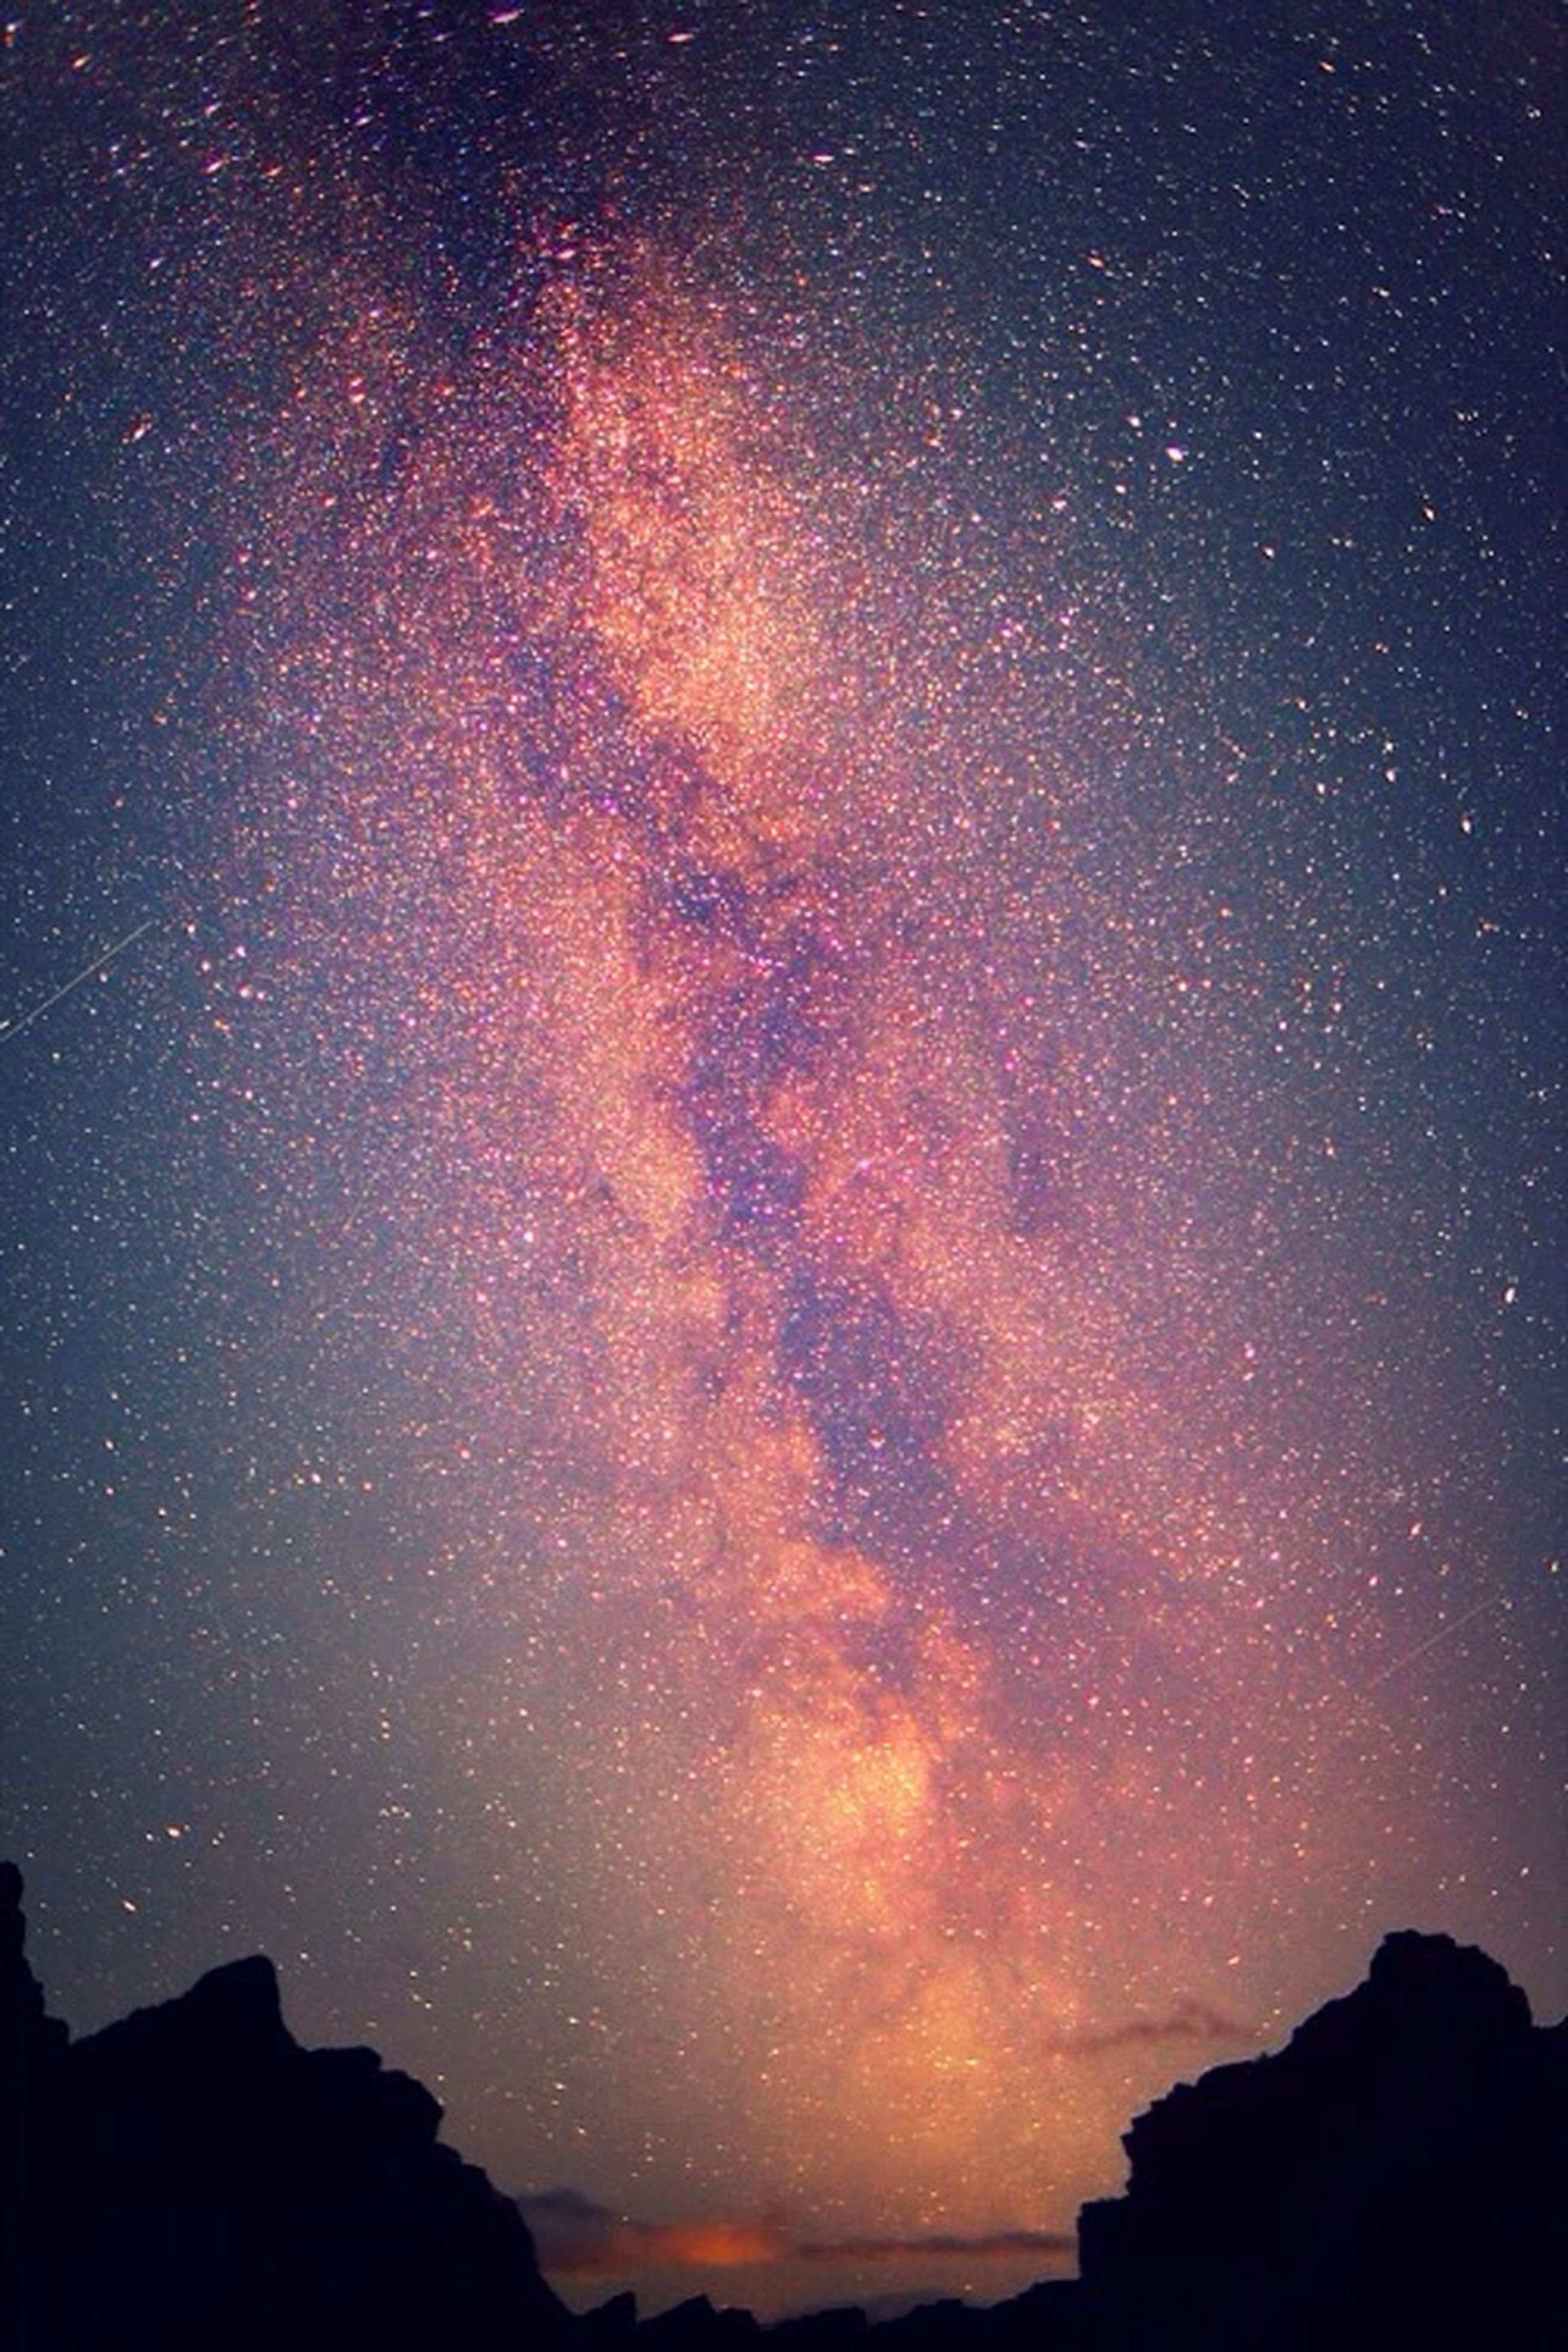 night, scenics, tranquil scene, beauty in nature, tranquility, sky, star - space, astronomy, star field, silhouette, nature, idyllic, majestic, dark, star, galaxy, low angle view, space, landscape, mountain